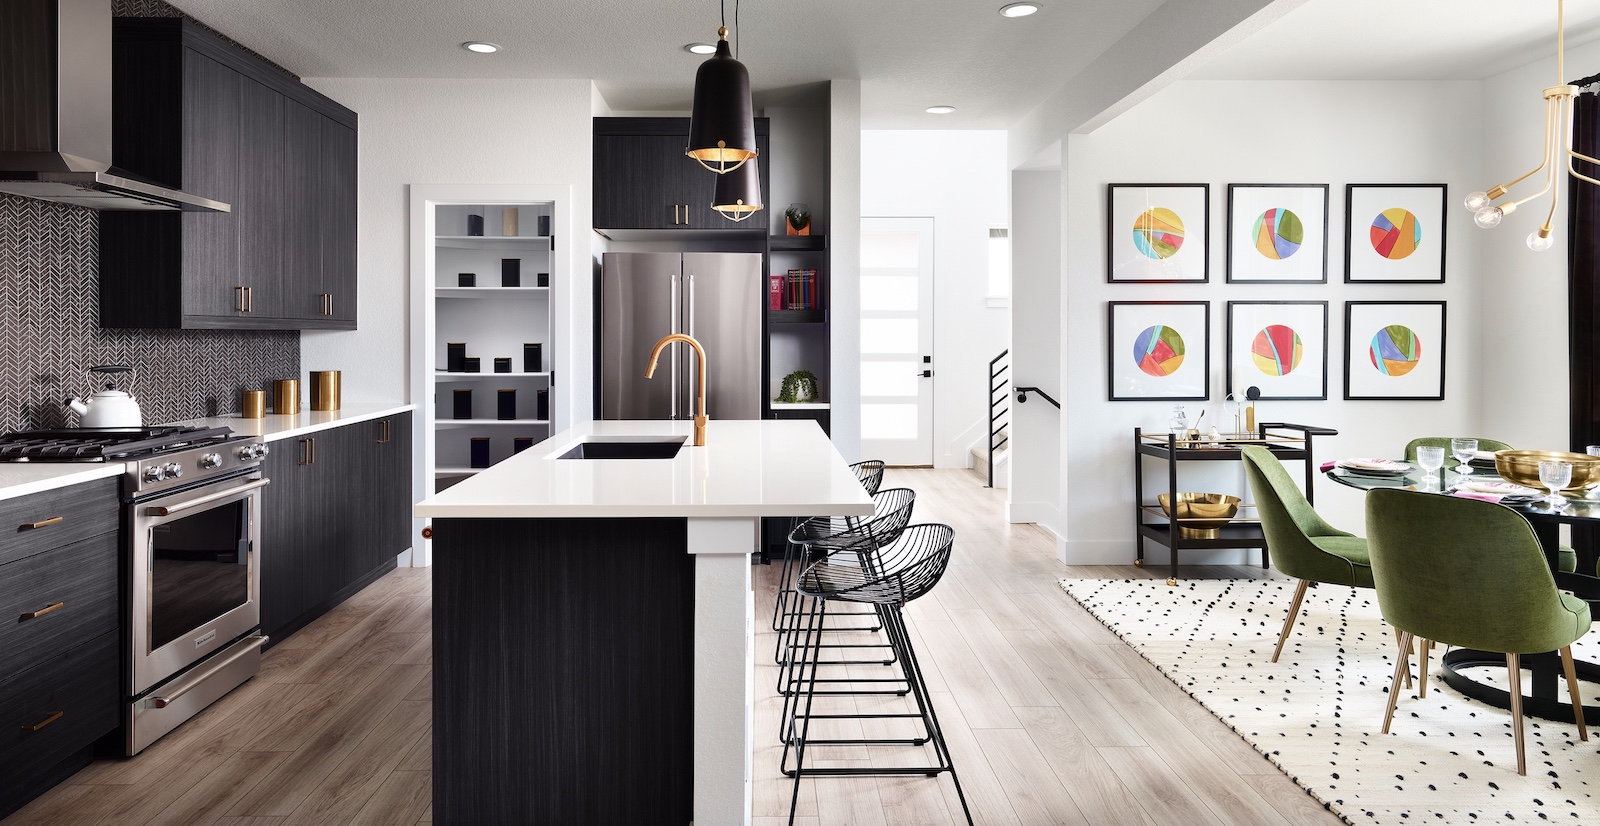 Sleek kitchen with black and white details.